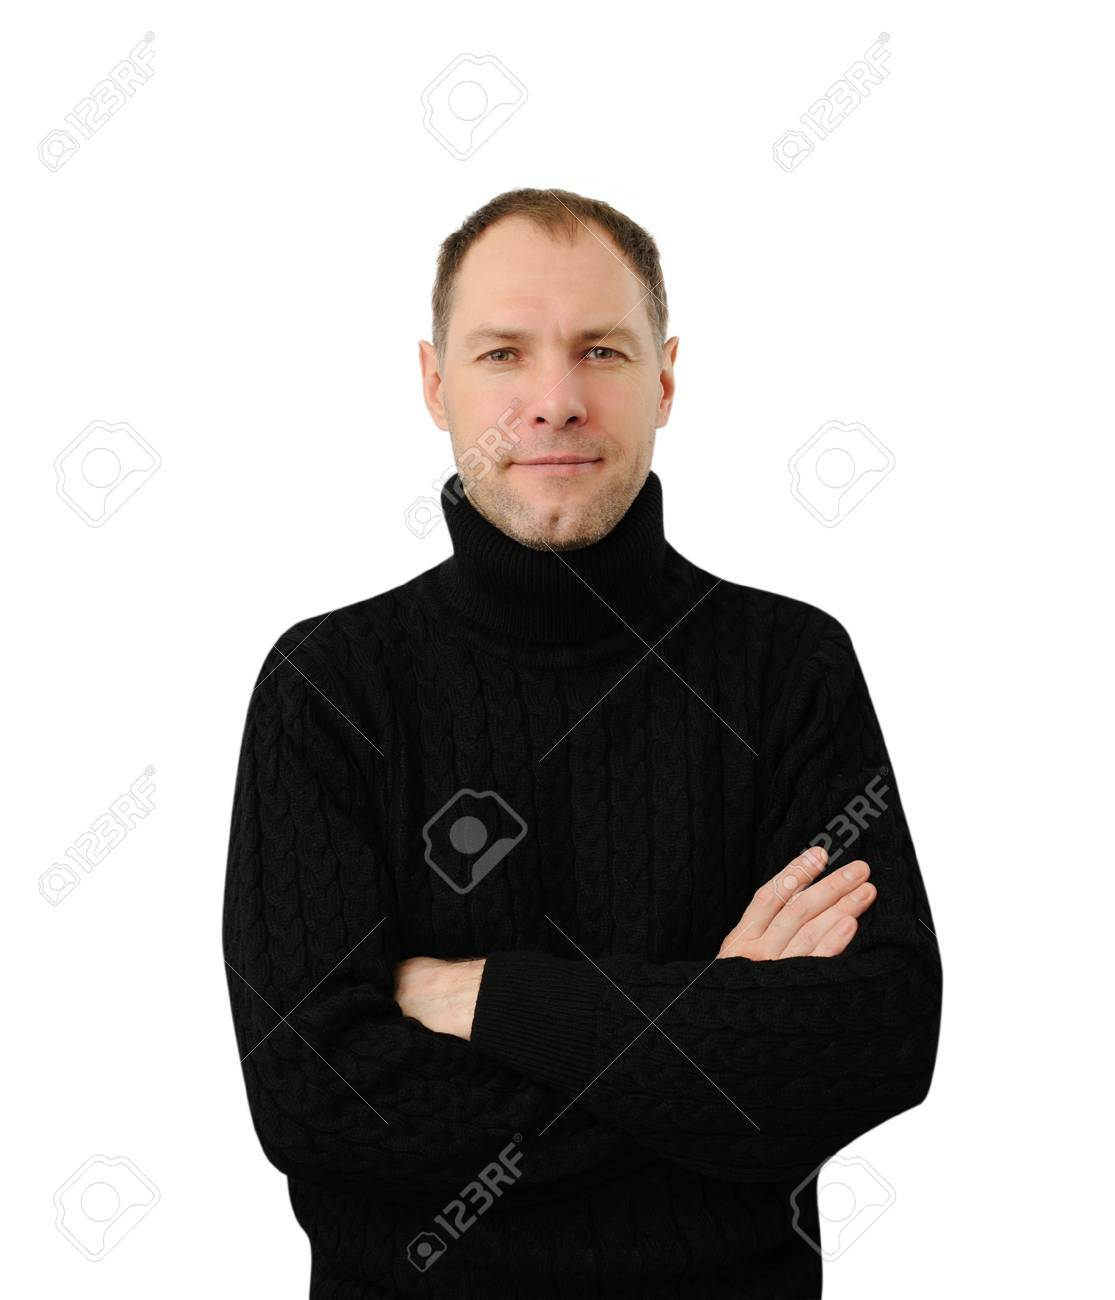 Sly smiling man in black isolated on the white background - 17337012